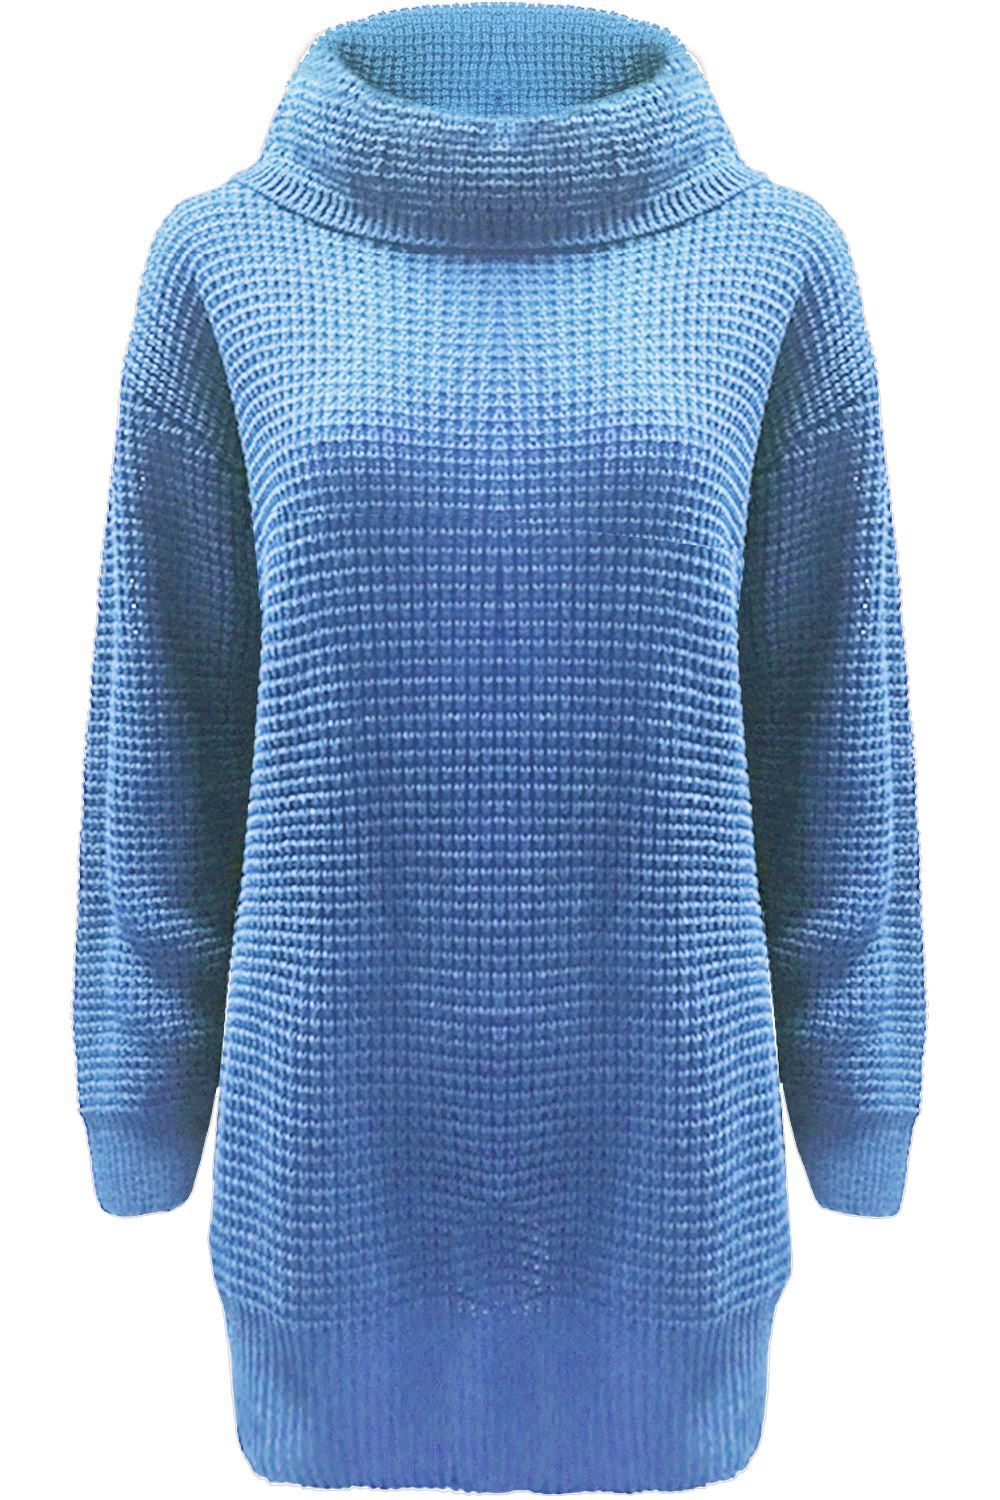 Womens Cowl Neck Mini Dress Jumper Knitted Long Sleeve Polo Oversized Baggy Top